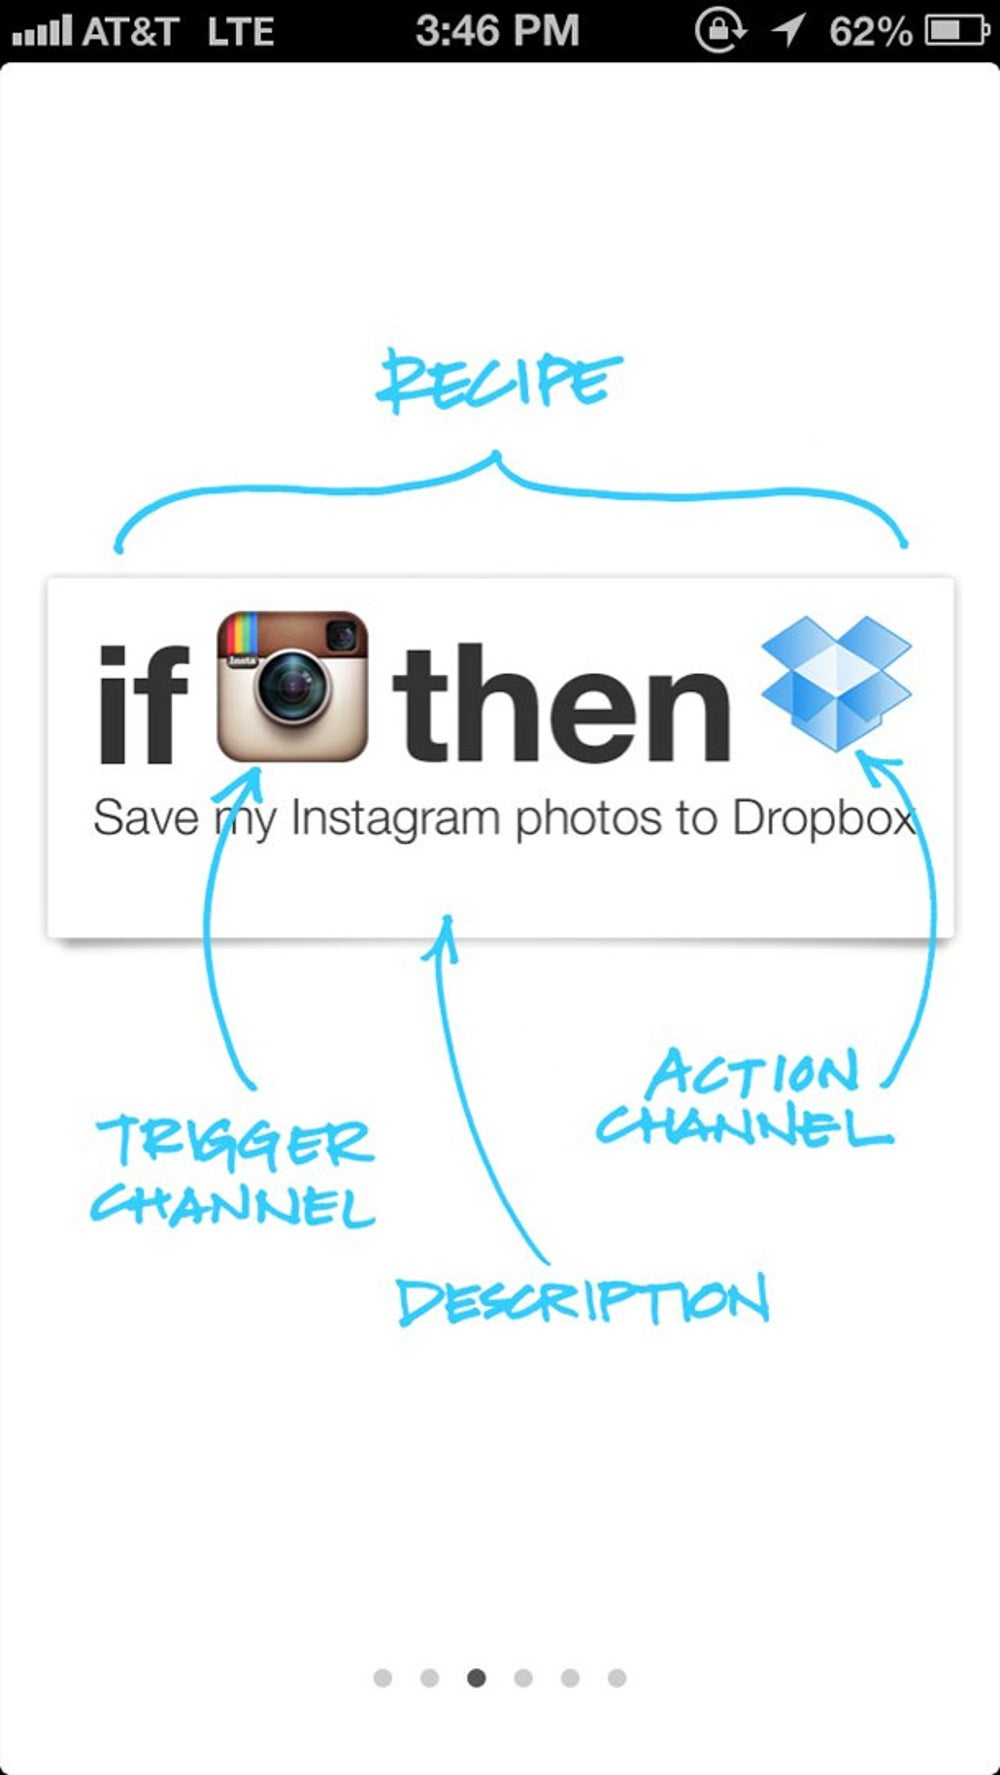 With the IFTTT app, everything is done behind the scenes. You don't have to be a programmer to make apps work together. Here is a little bit more on how recipes work. If Instagram takes a photo, then save that photo to Dropbox.